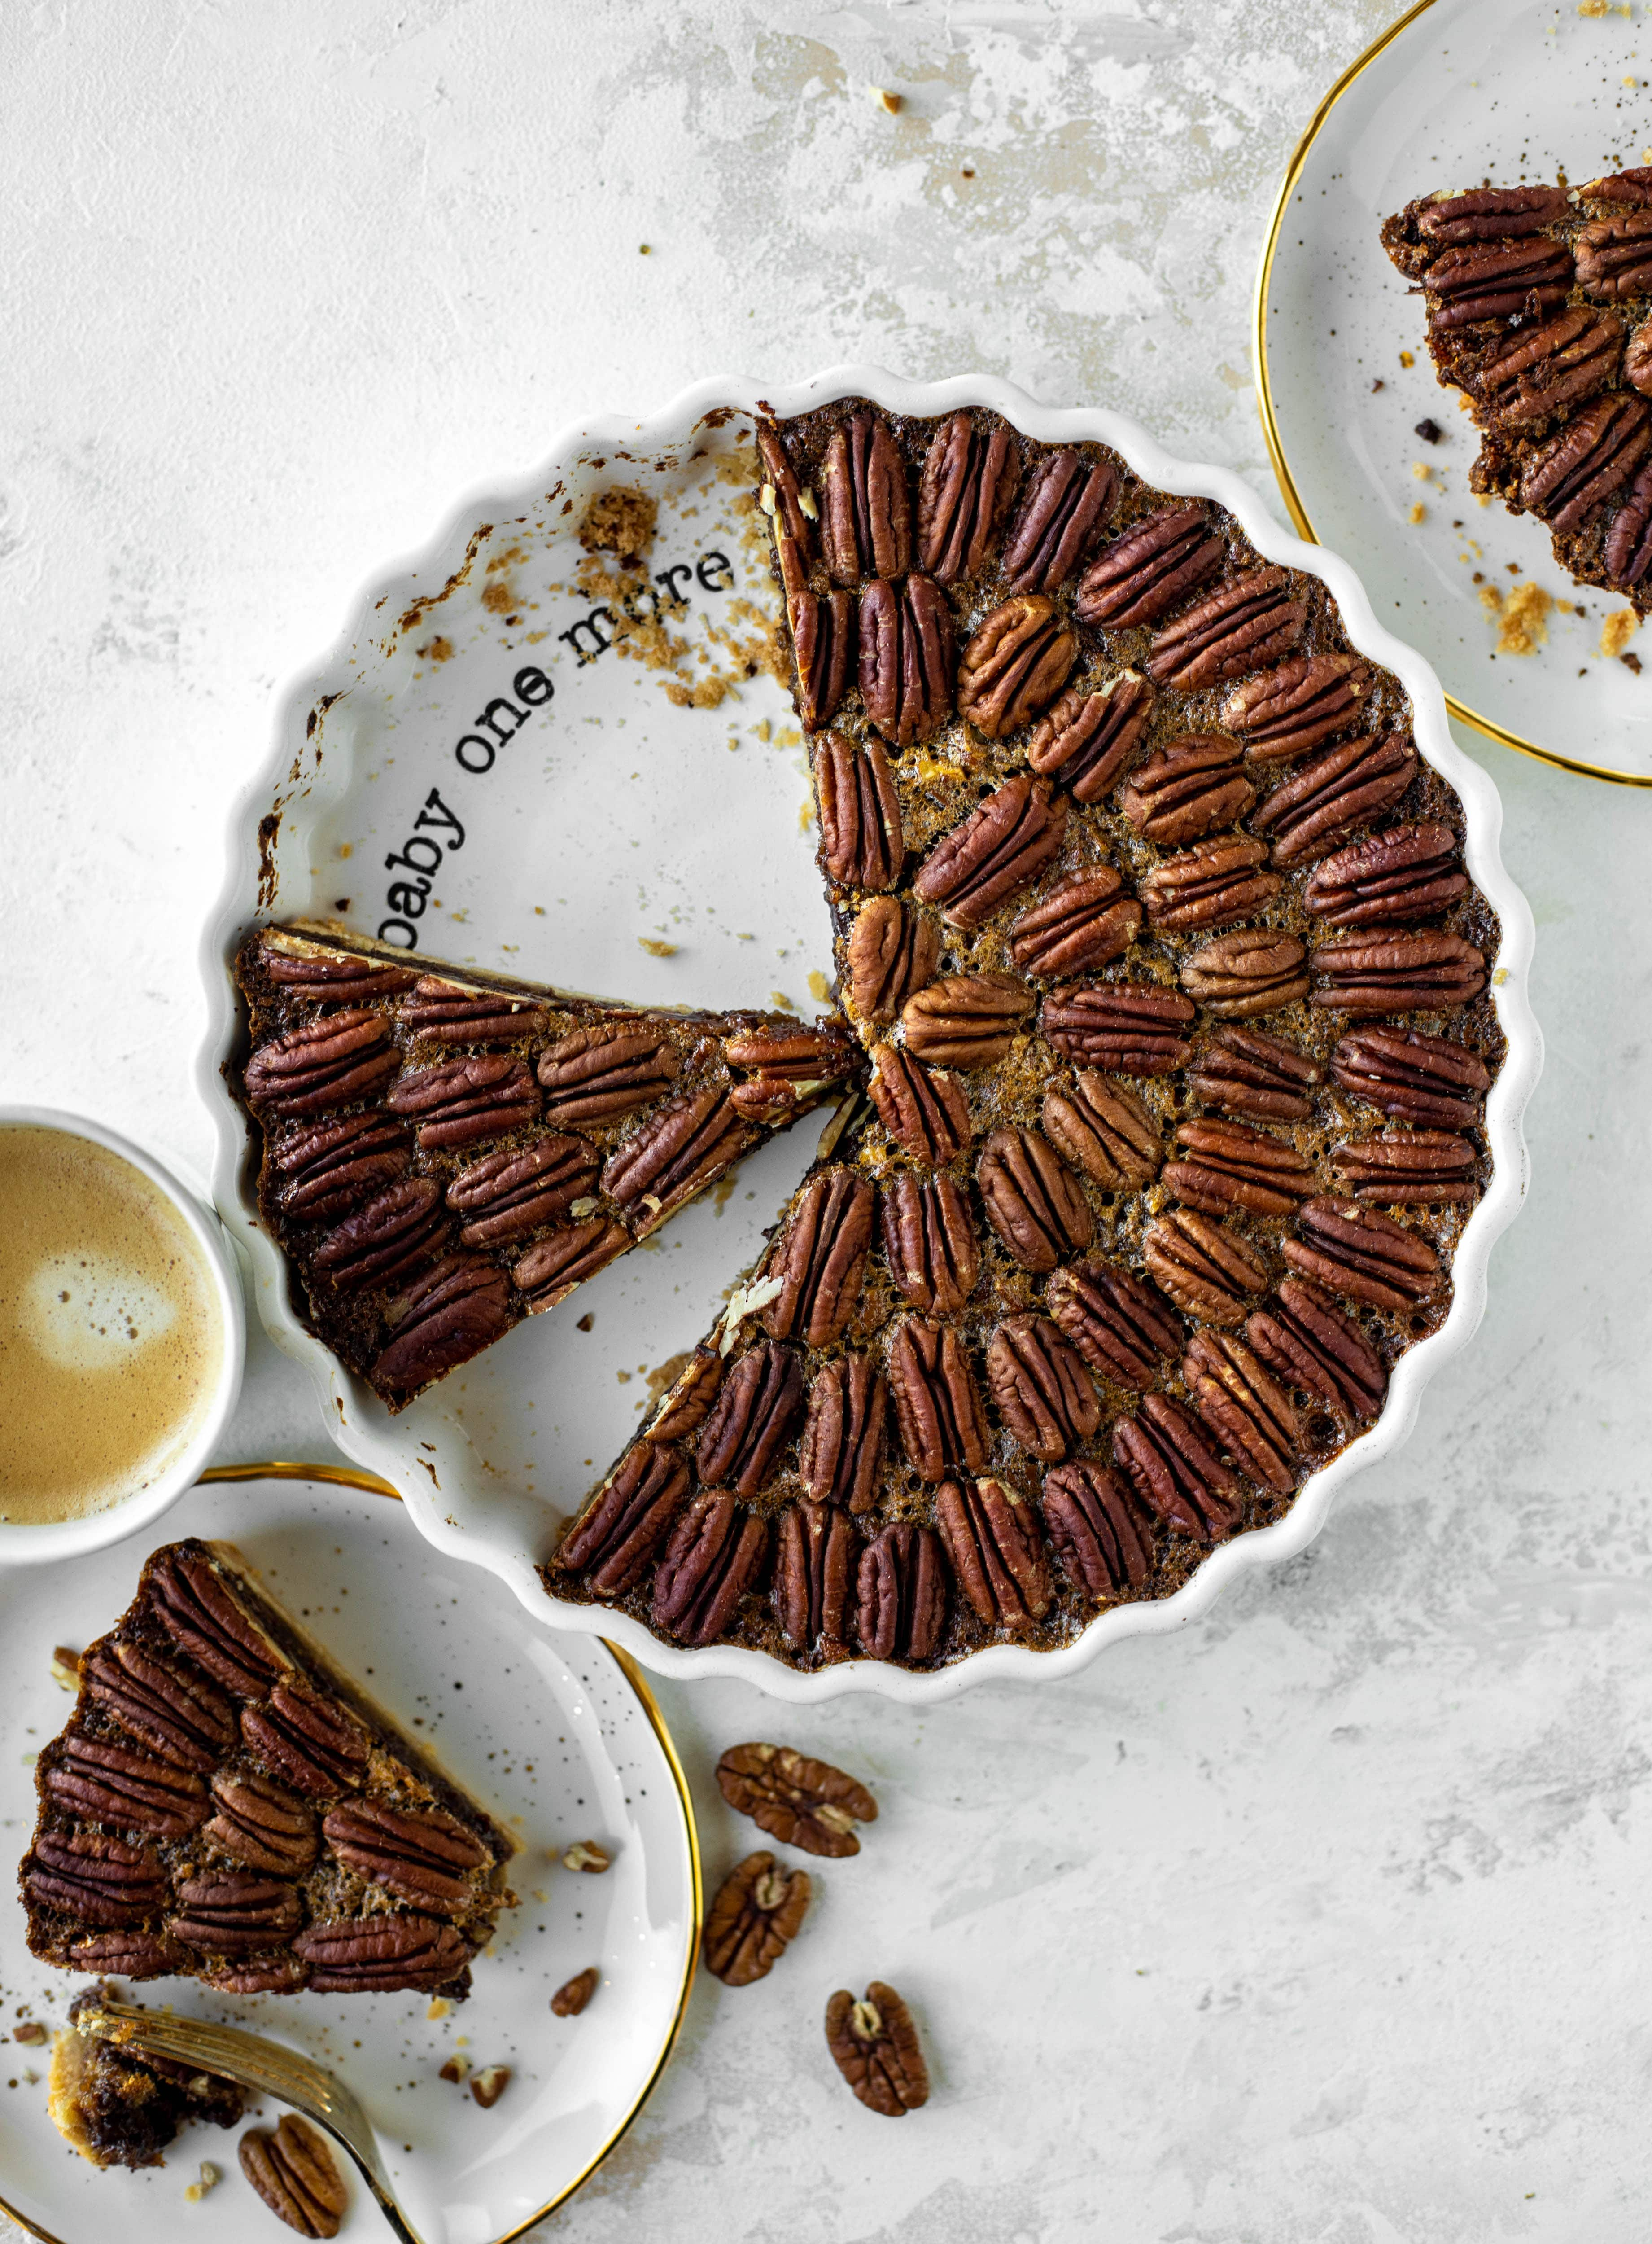 This chocolate pecan tart is the best dessert ever. Chocolate fudge and gooey pecan pie in a shortbread crust - everyone goes crazy!